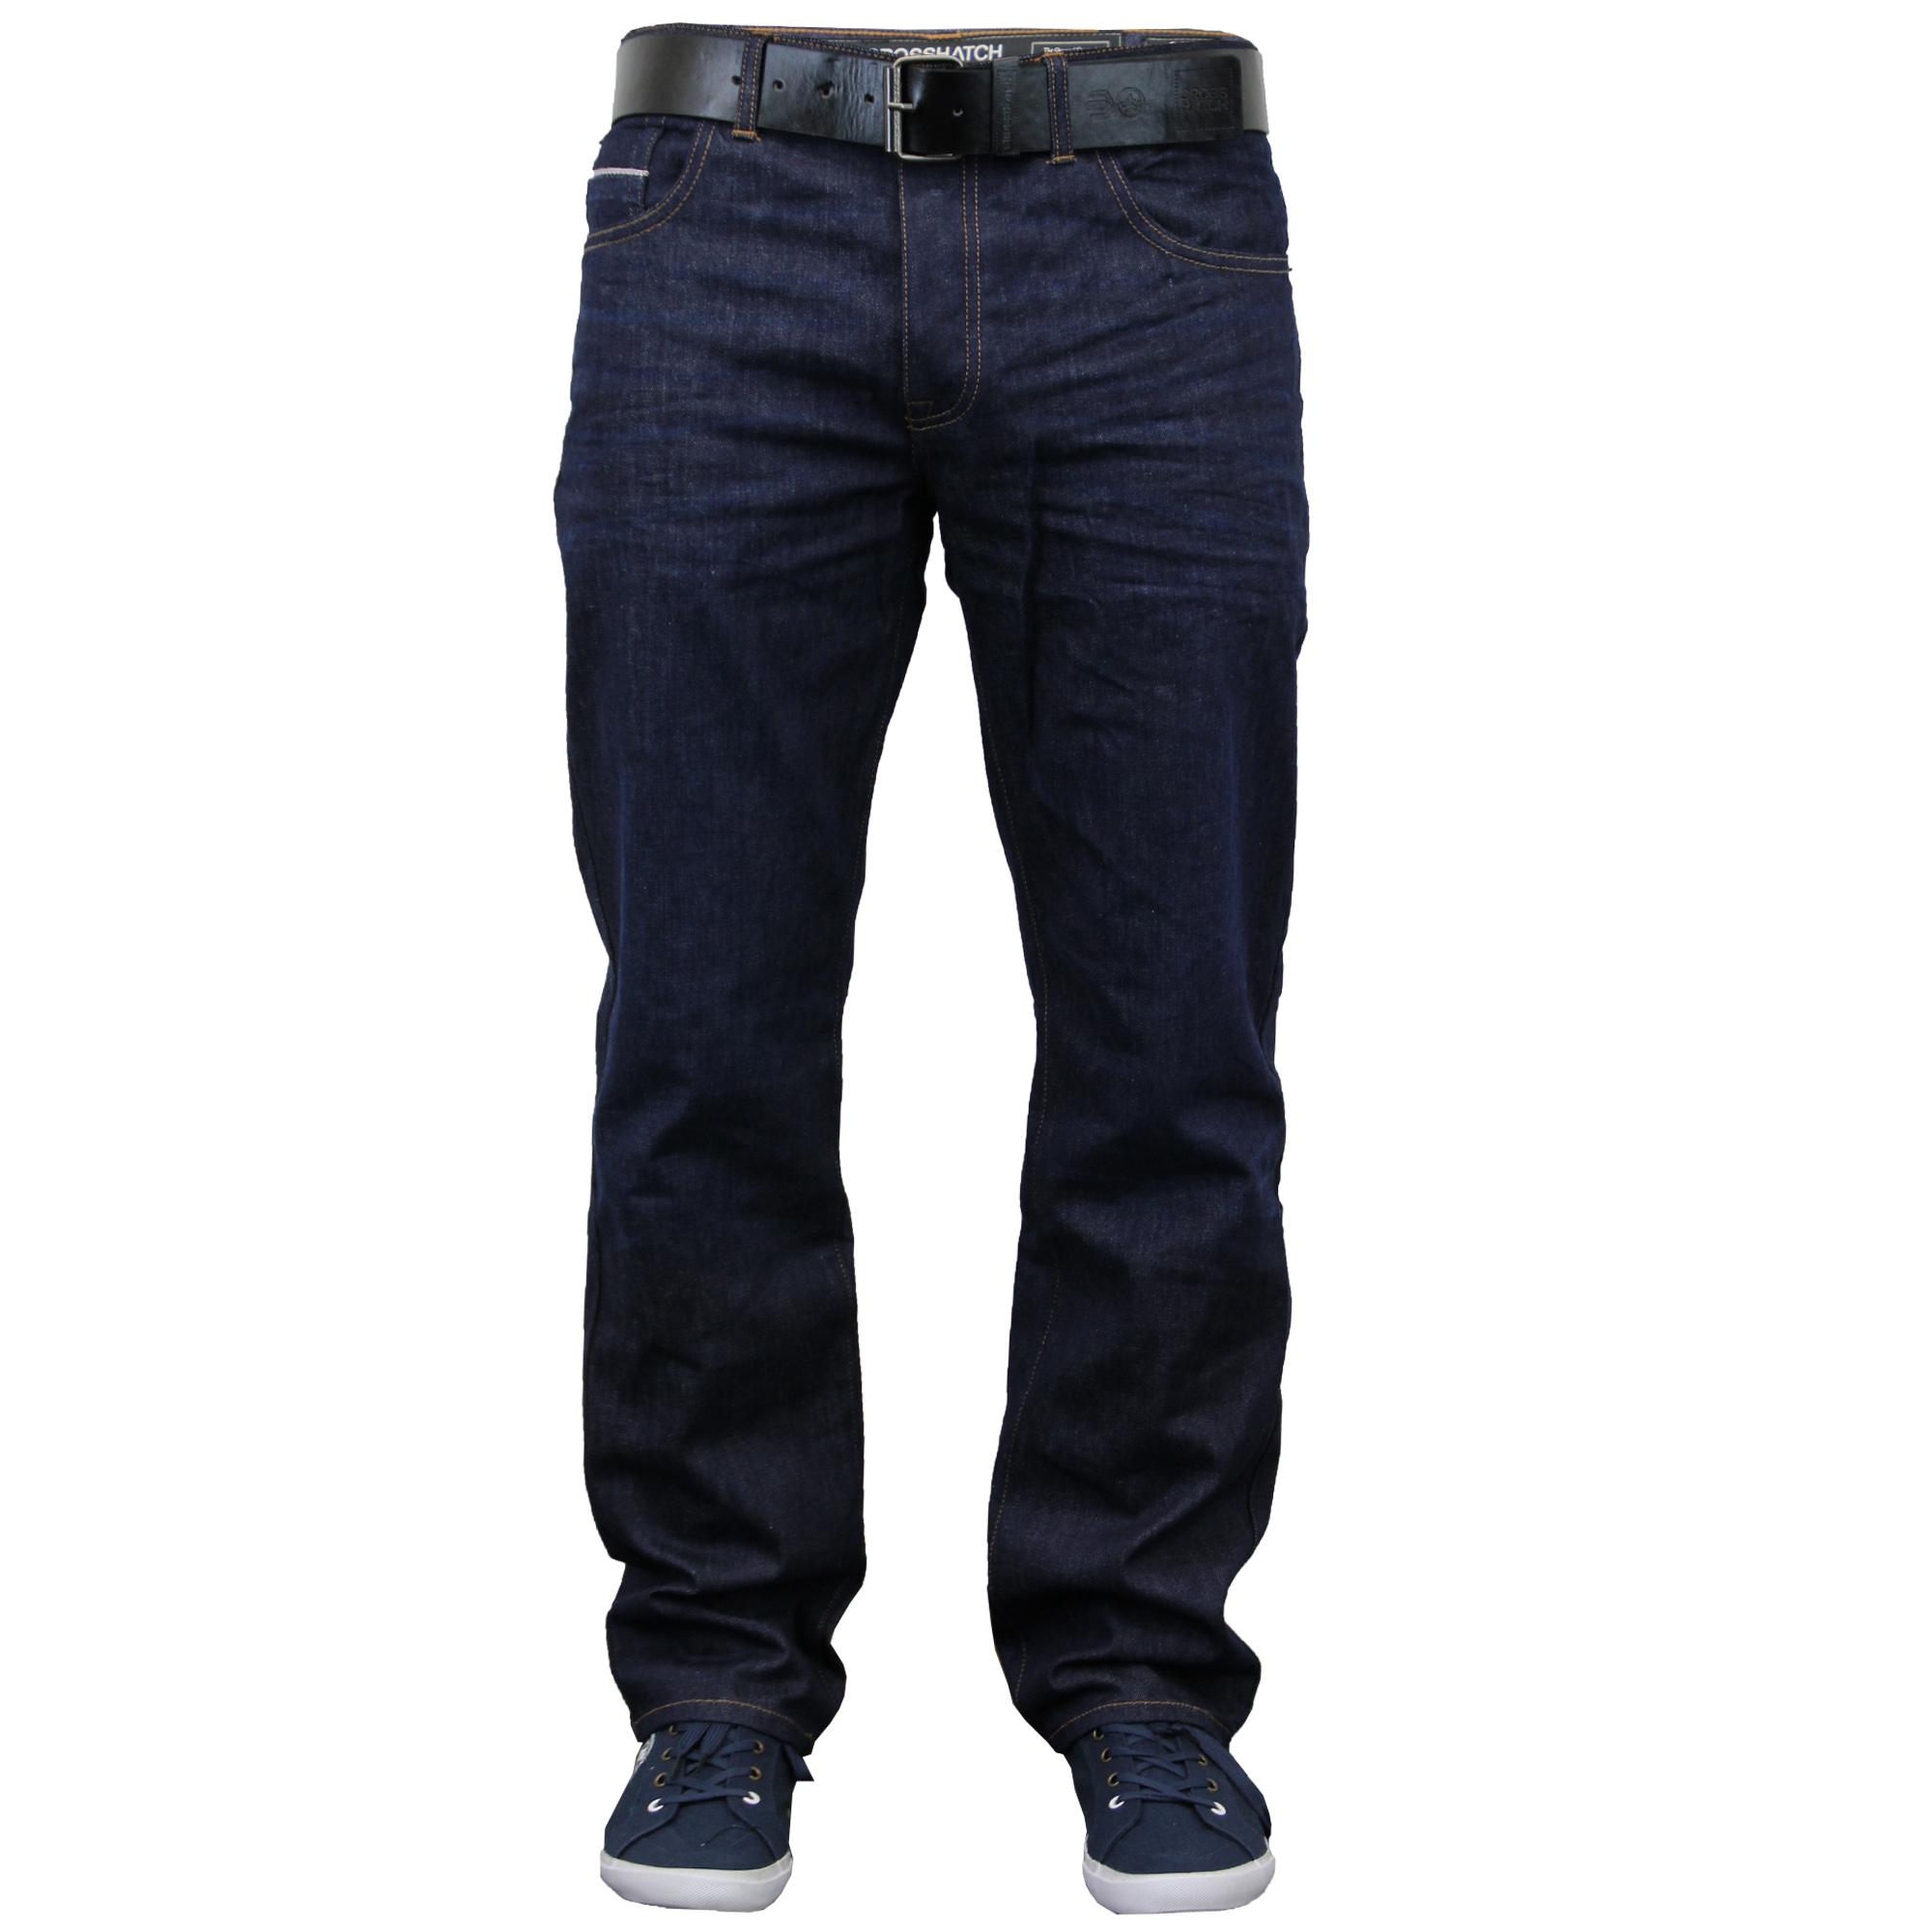 Men's Pants, Twill Pants and Wool Pants from oldsmobileclub.ga Look your best in Men's pants from oldsmobileclub.ga Our selection includes Men's twill pants, wool pants, easy-care styles and much more, all made from sturdy, comfortable fabrics with fine workmanship.